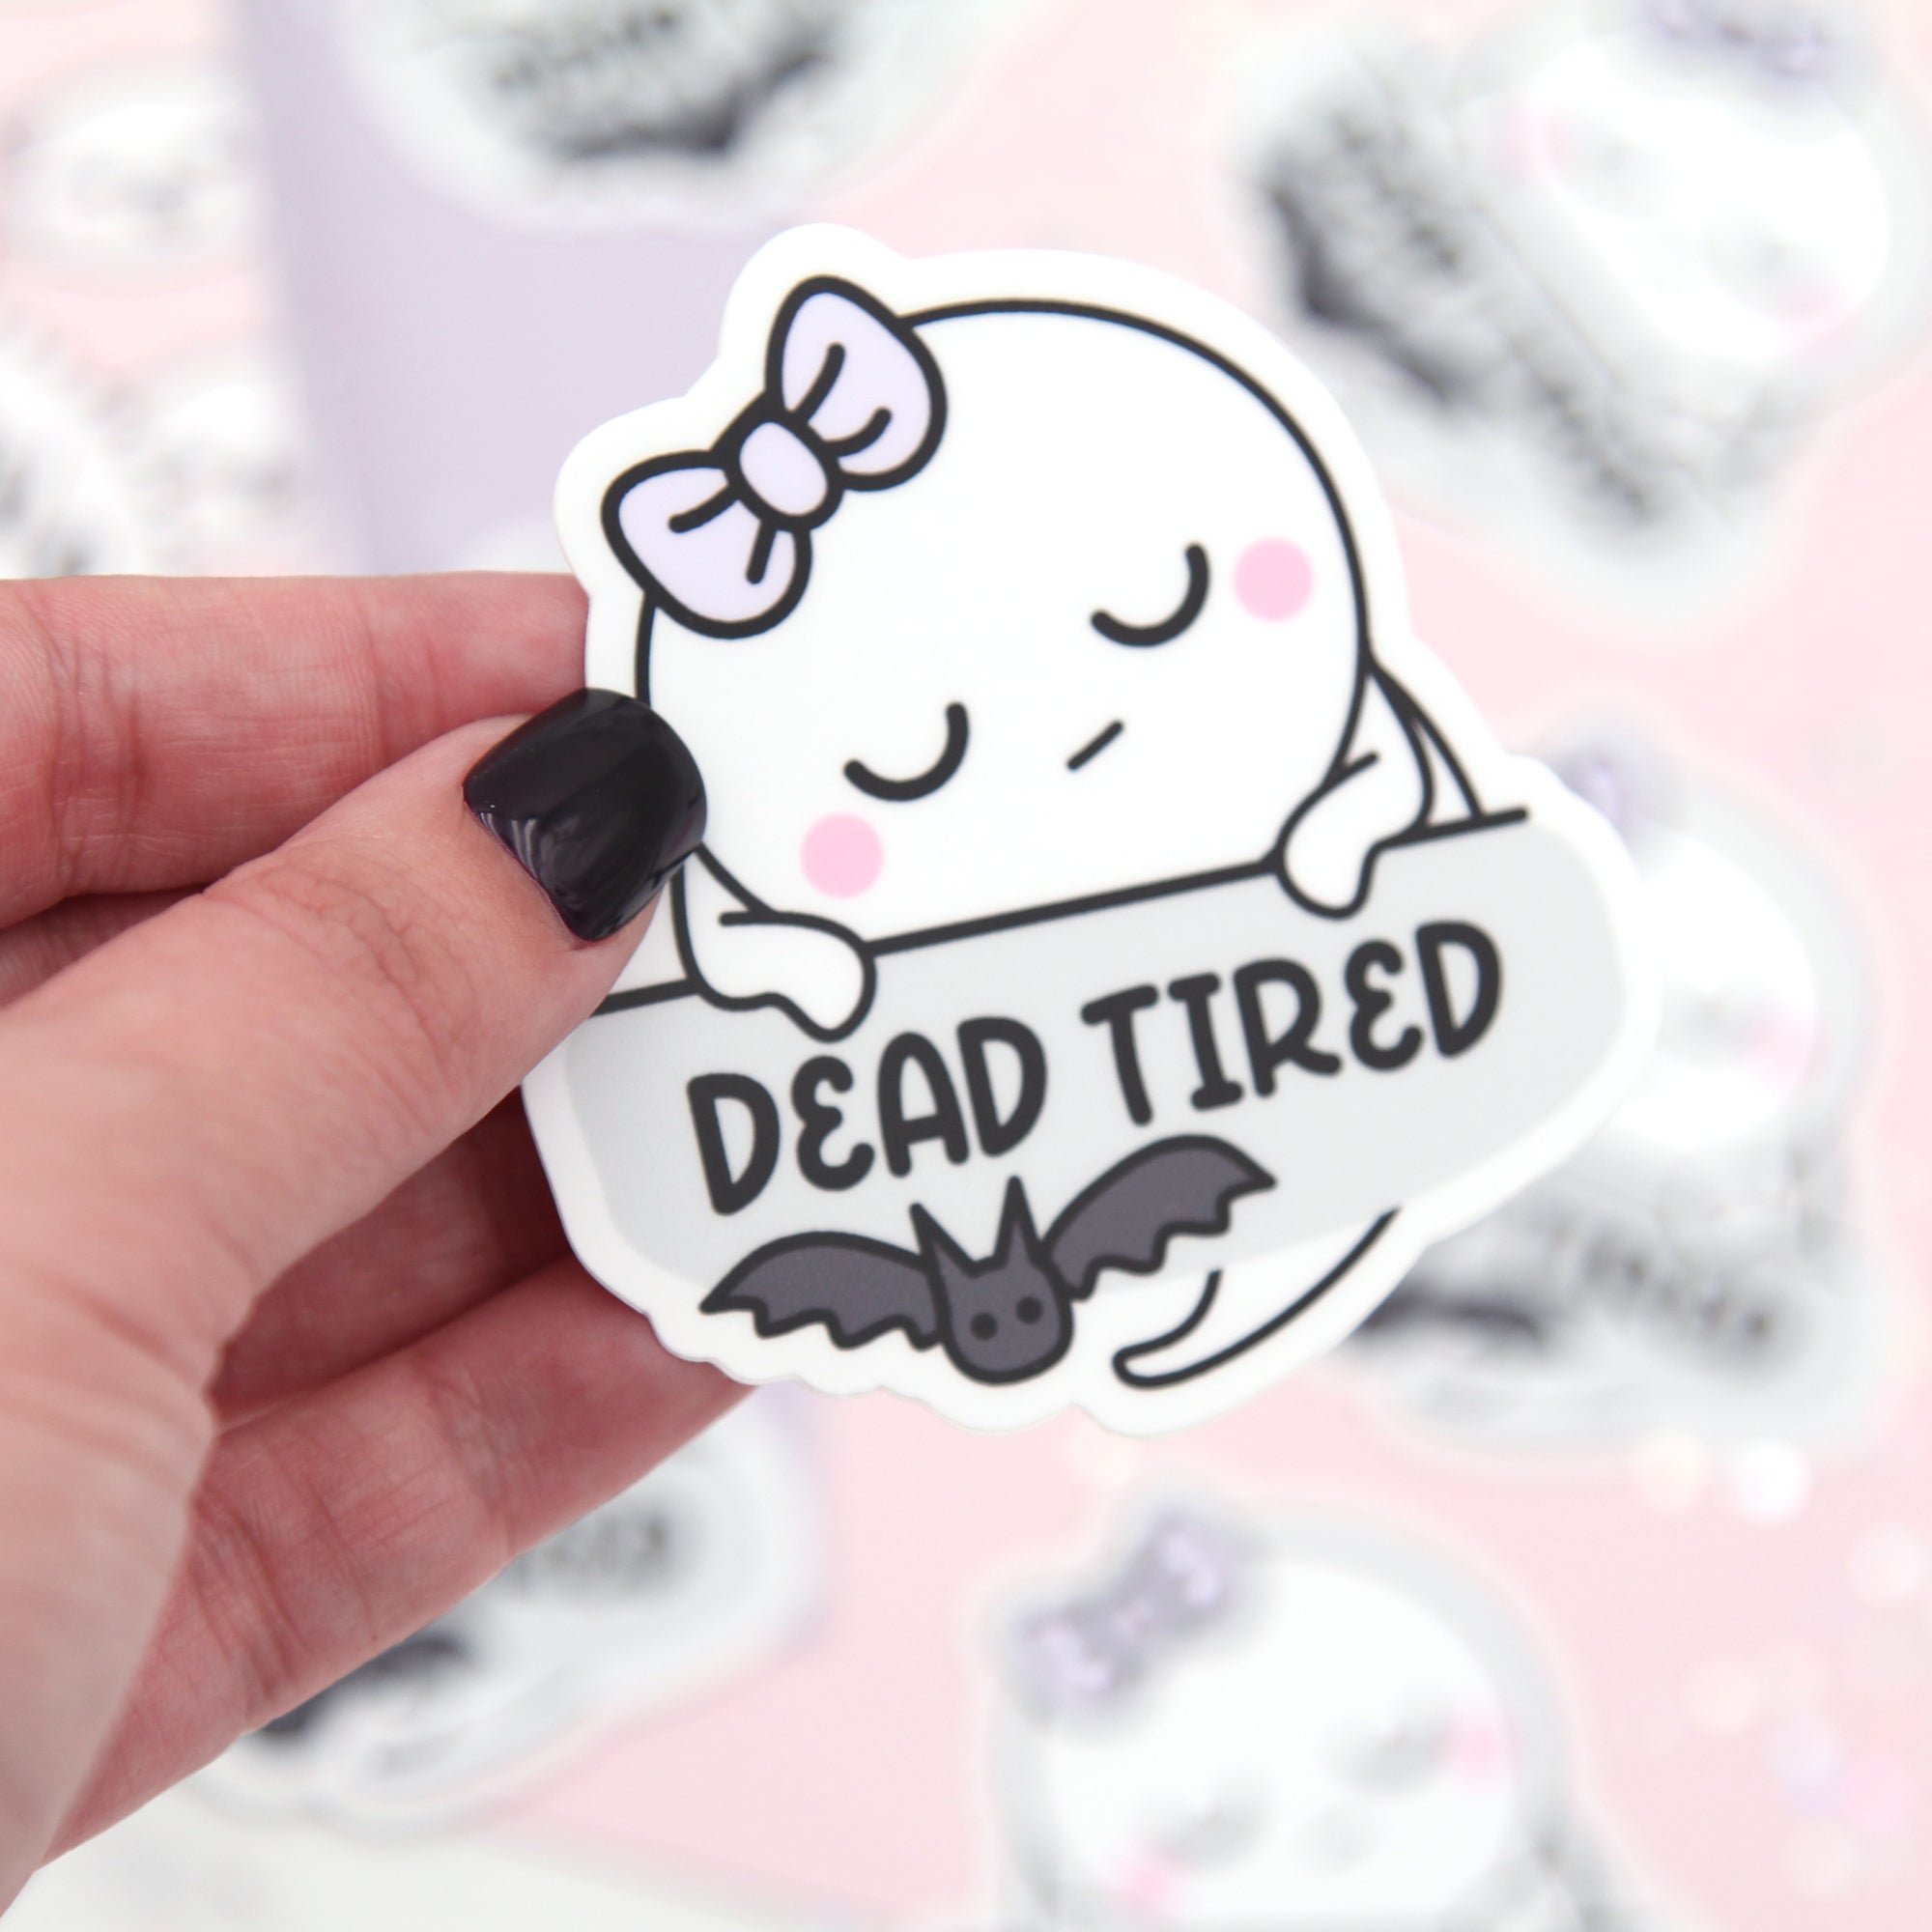 Boo - Dead Tired - Bat Vinyl Die Cut Sticker - Ghost Vinyl Sticker - Tumbler Decal